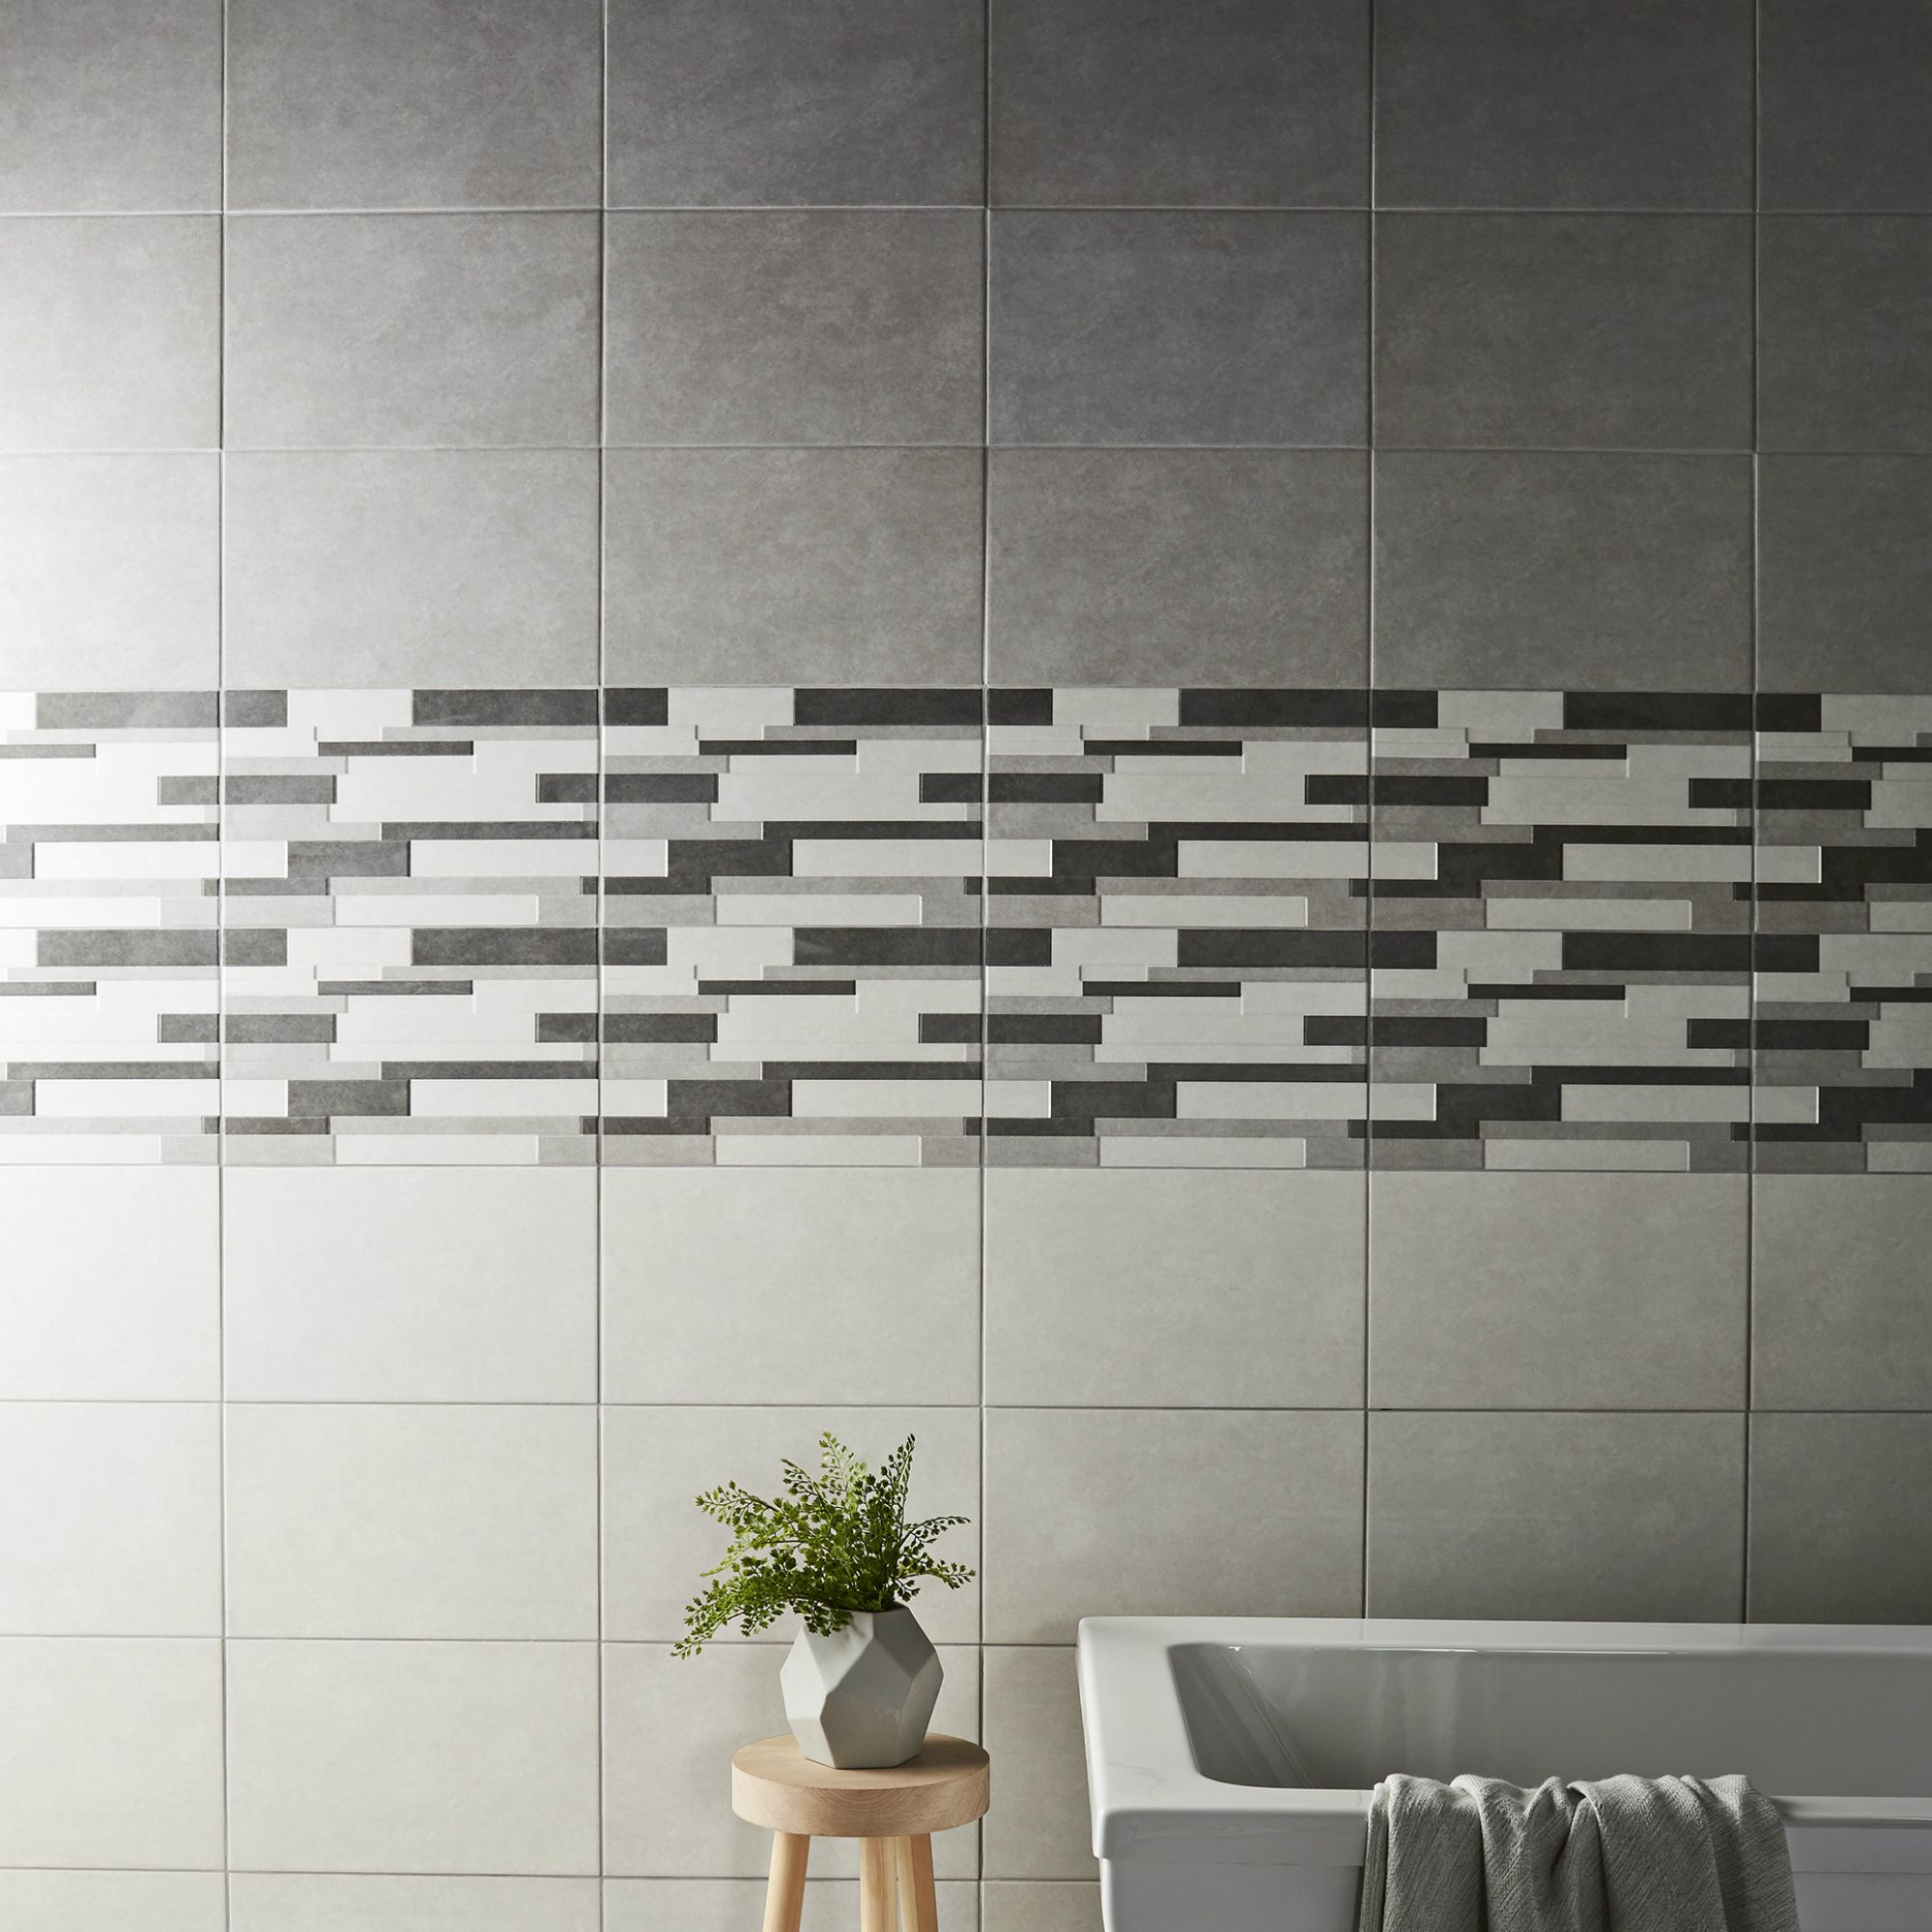 Cimenti Grey Matt Ceramic Wall Tile L 400mm W 250mm Sample Departments Diy At B Q